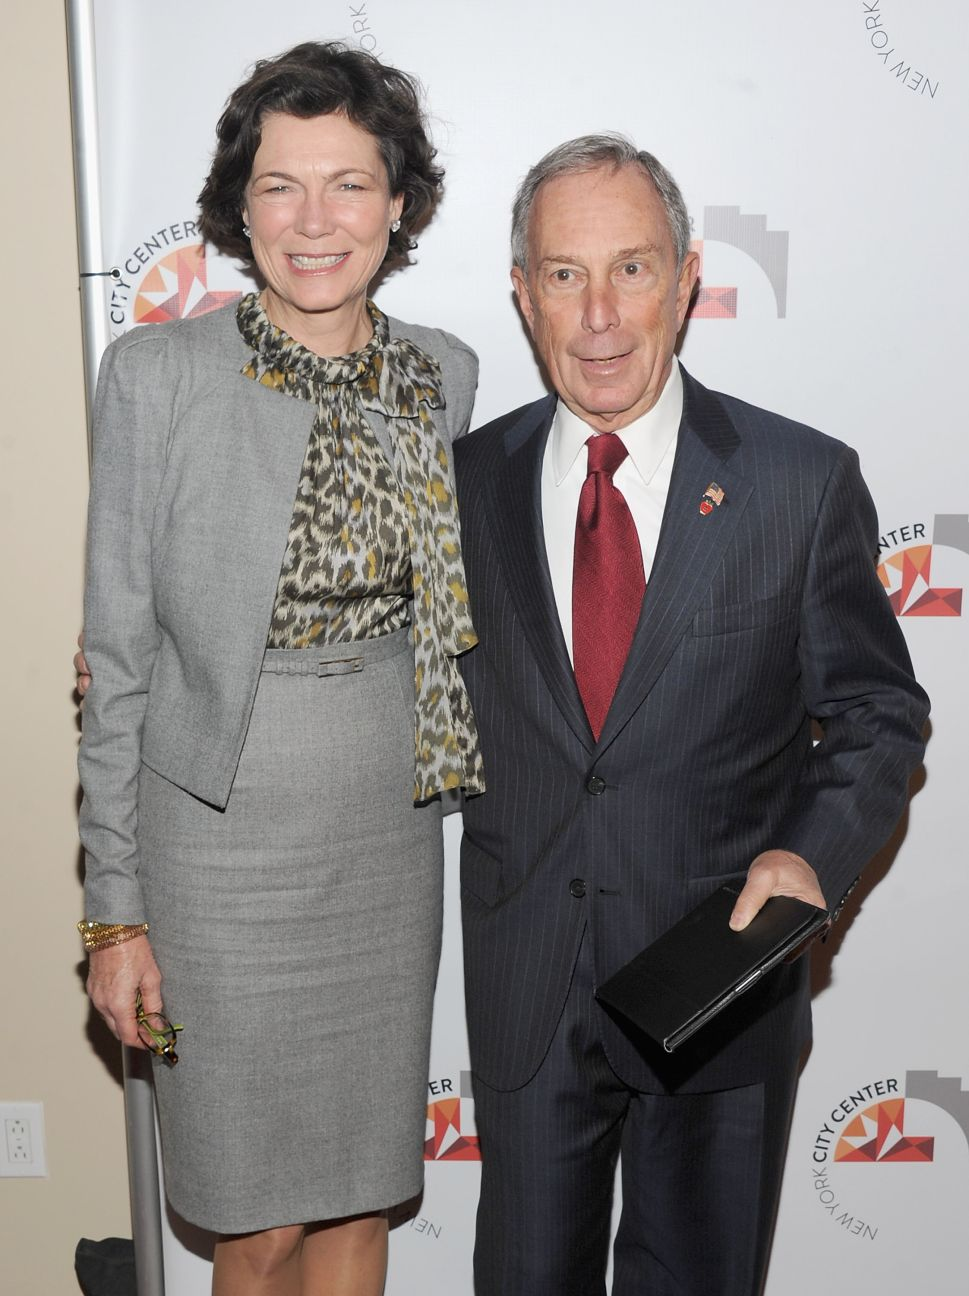 Bloomberg's Girlfriend Diana Taylor Threatens to Resign From Sotheby's Board If Teamsters' Demands Are Met (Video)